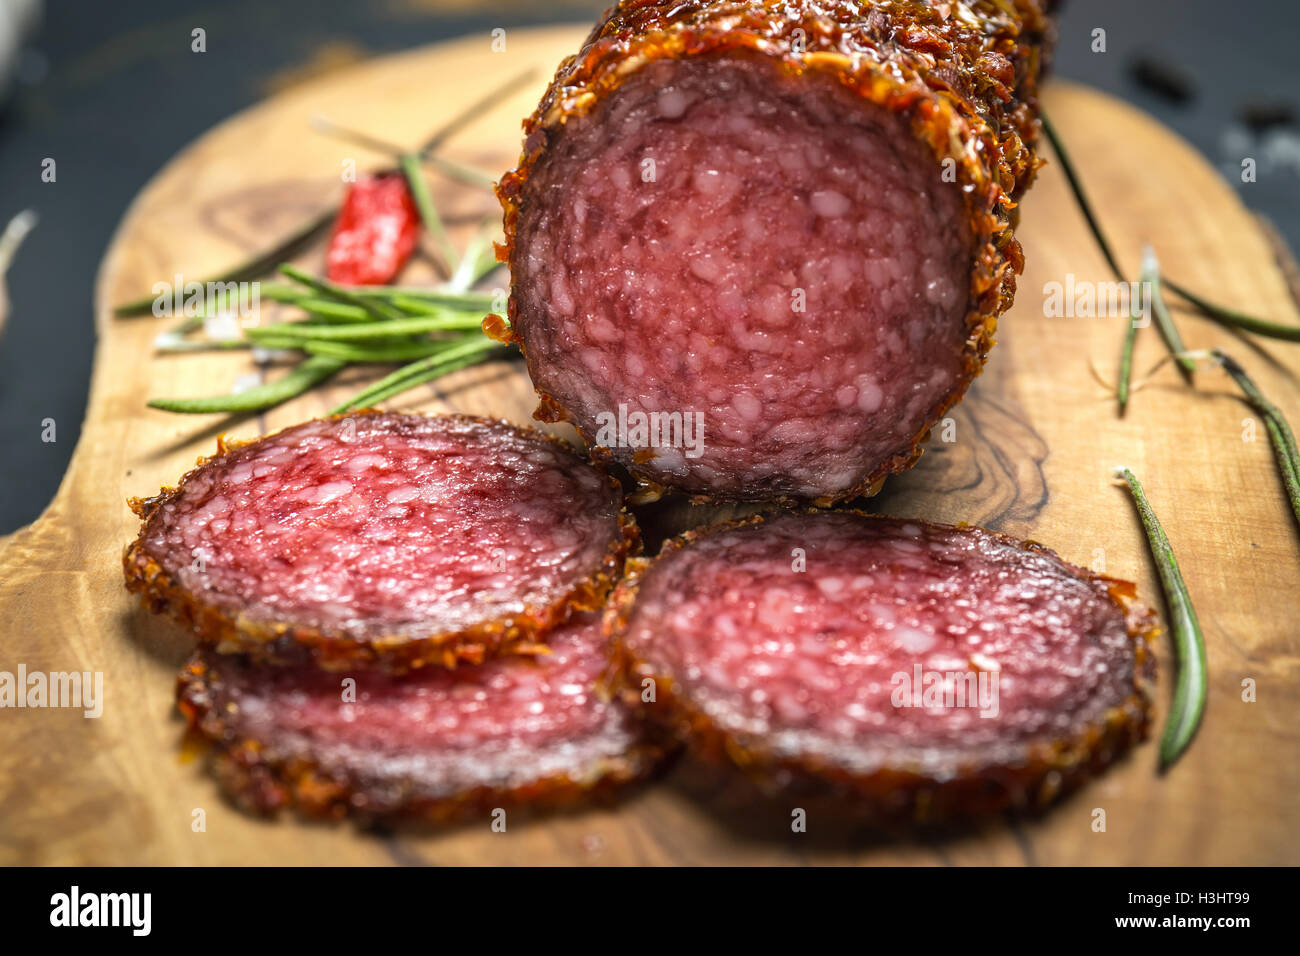 dried salami crusted in ground red pepper on dark background - Stock Image